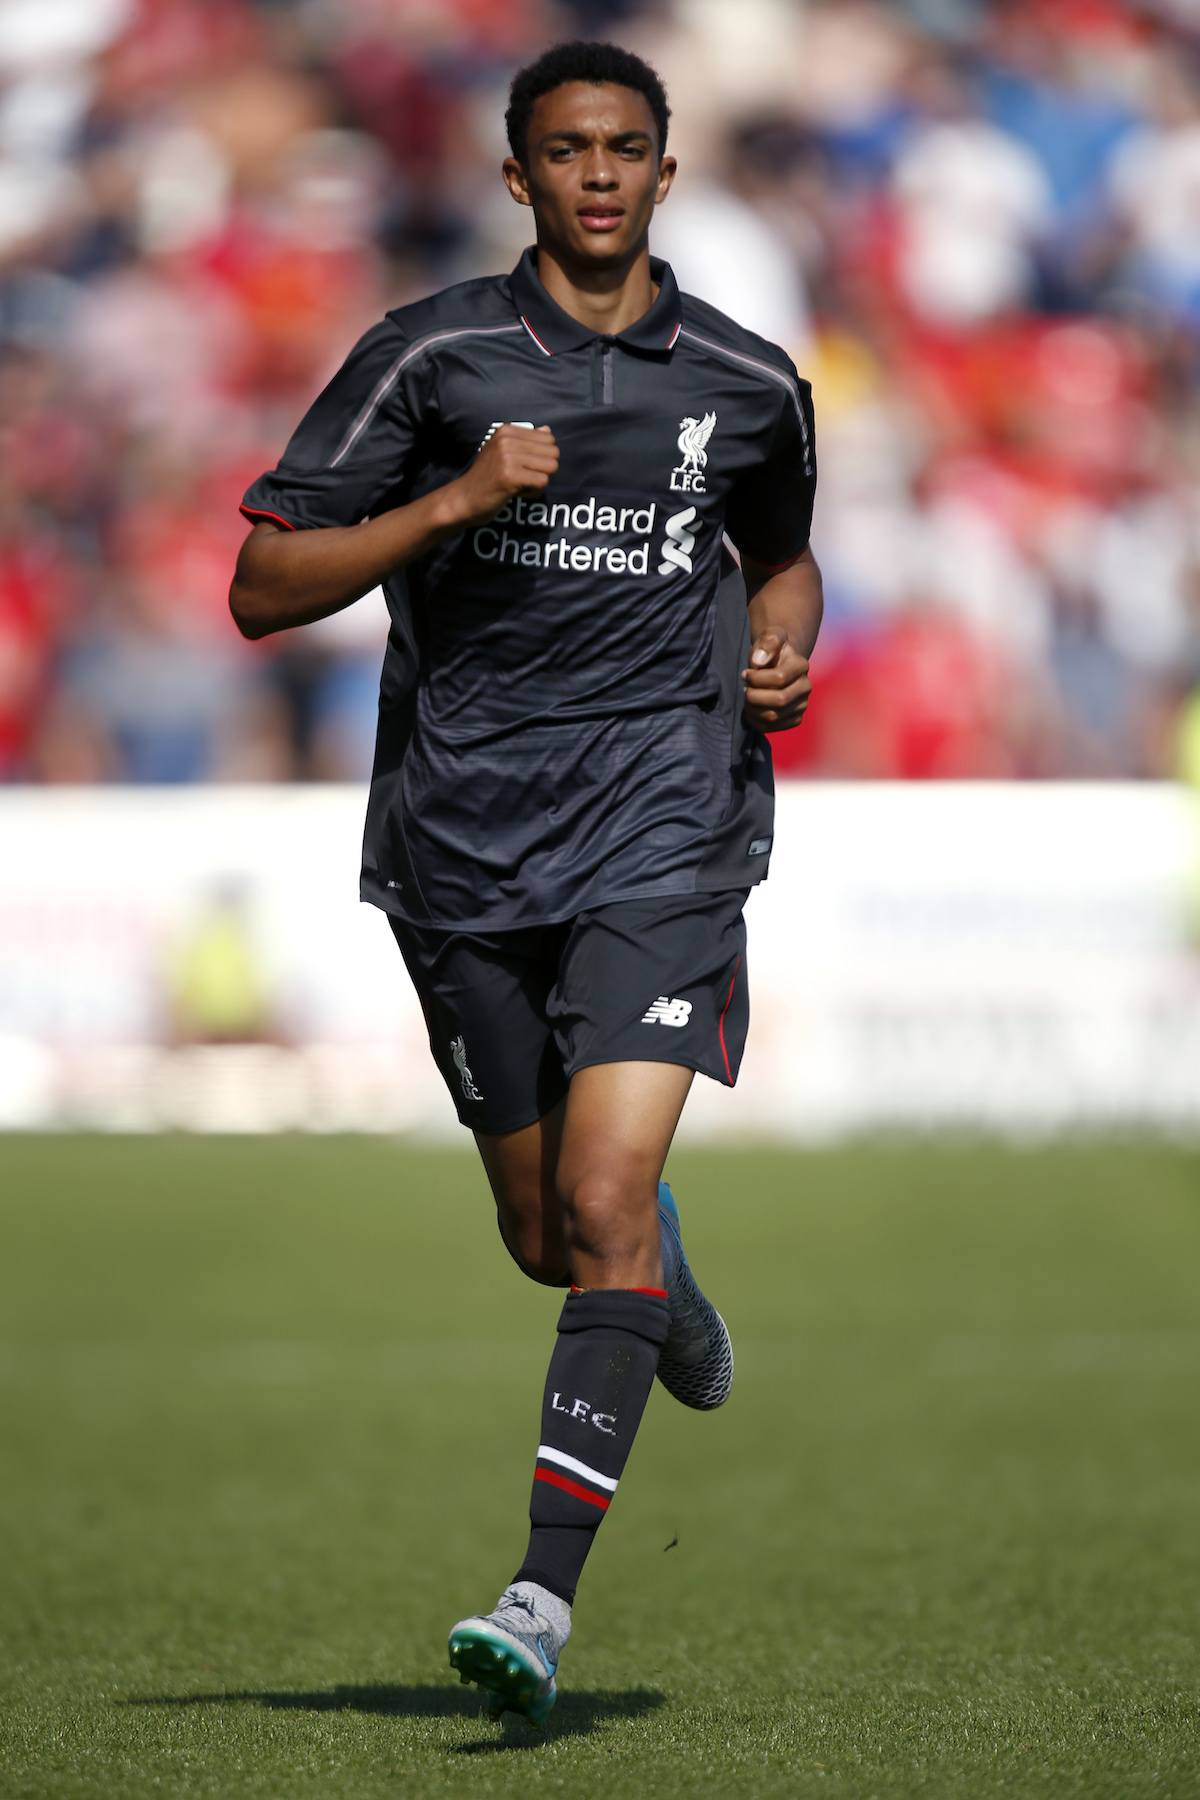 Trent_Alexander_Arnold_strides_out_on_the_pitch_for_Liverpool